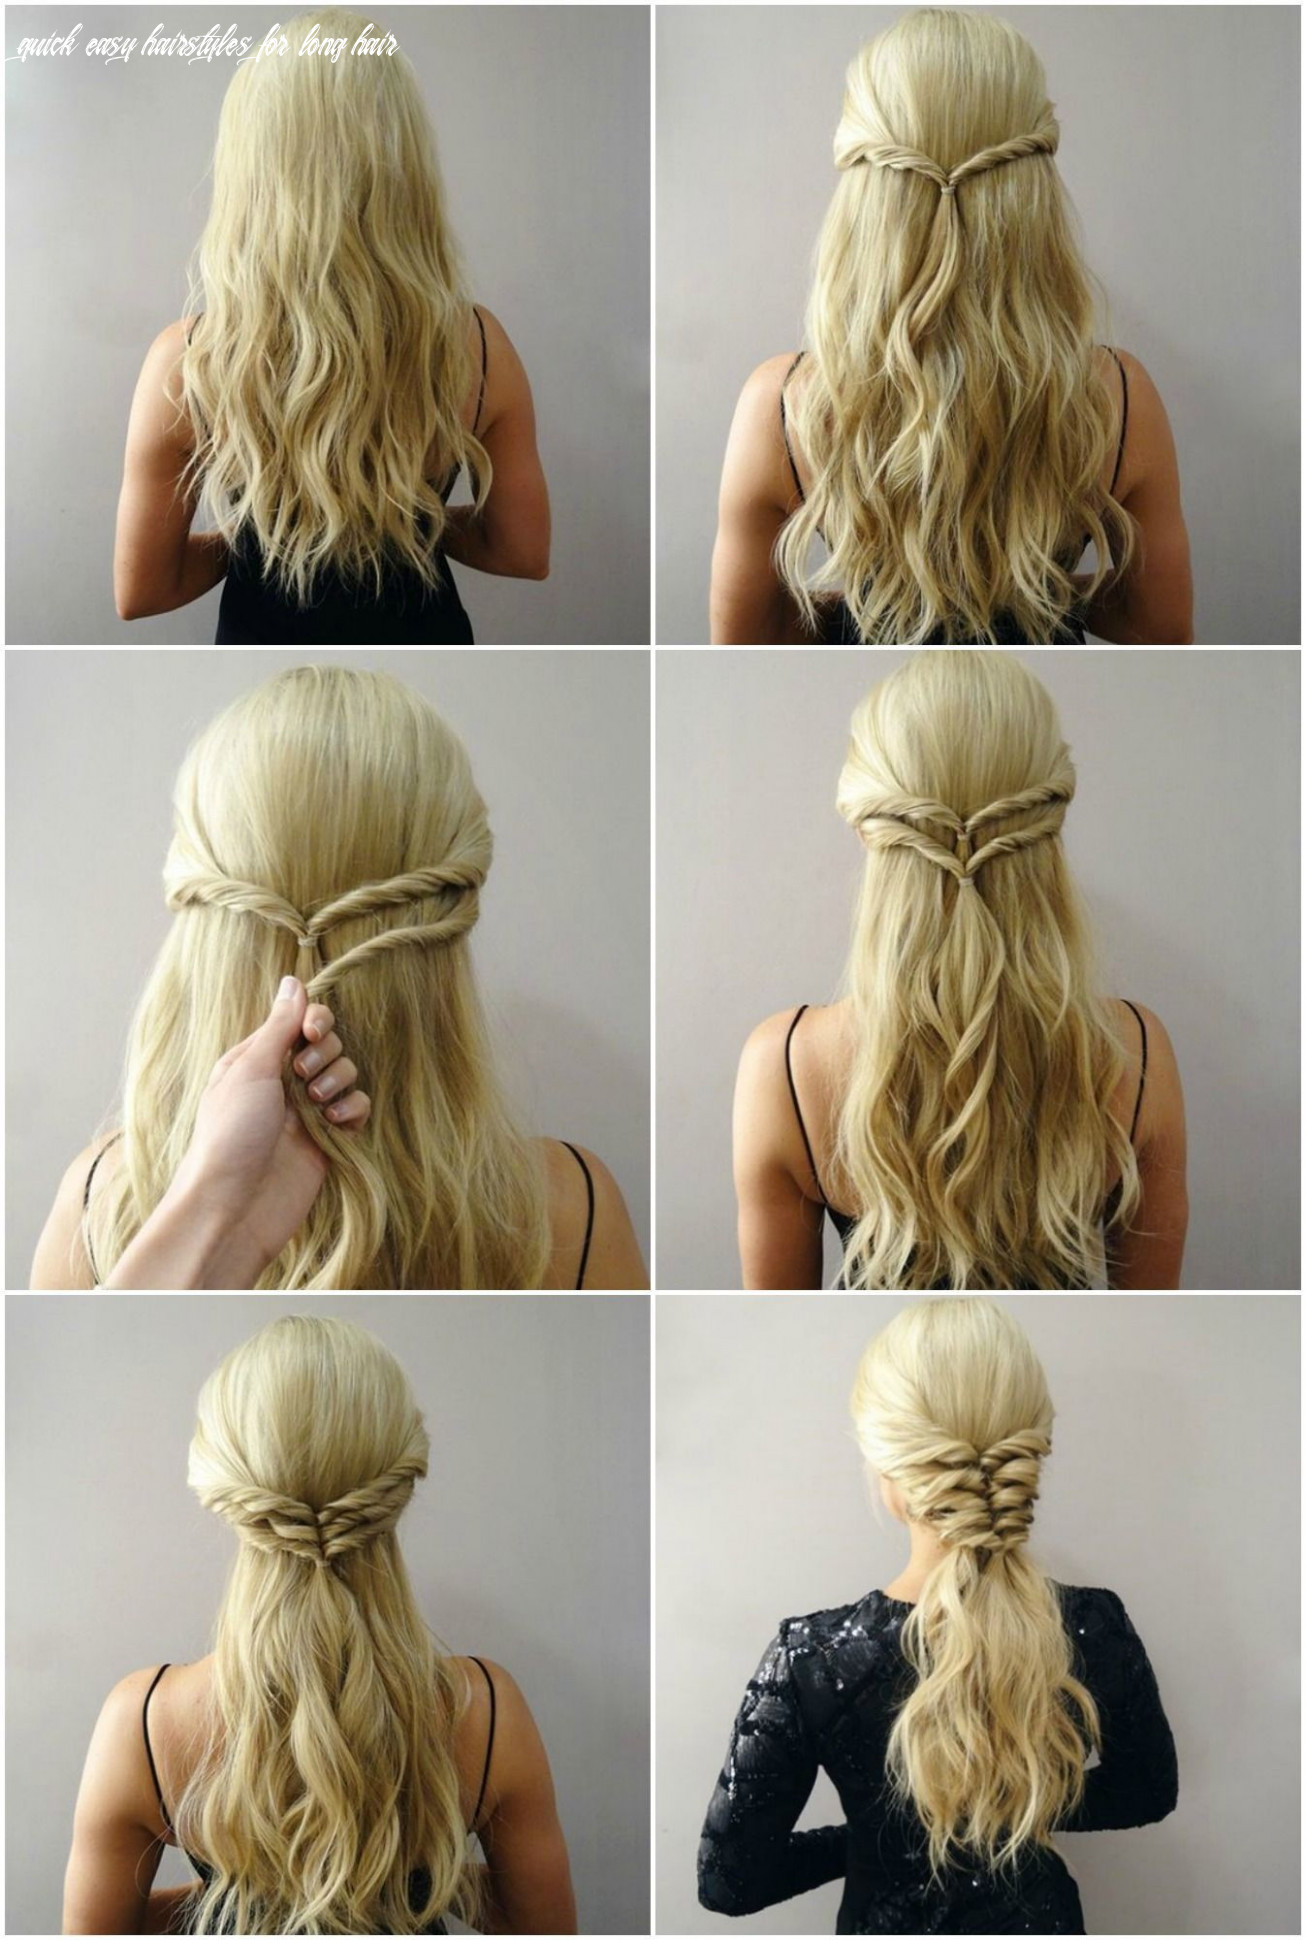 12 ethereal women hairstyles blonde ideas | hair tutorials easy